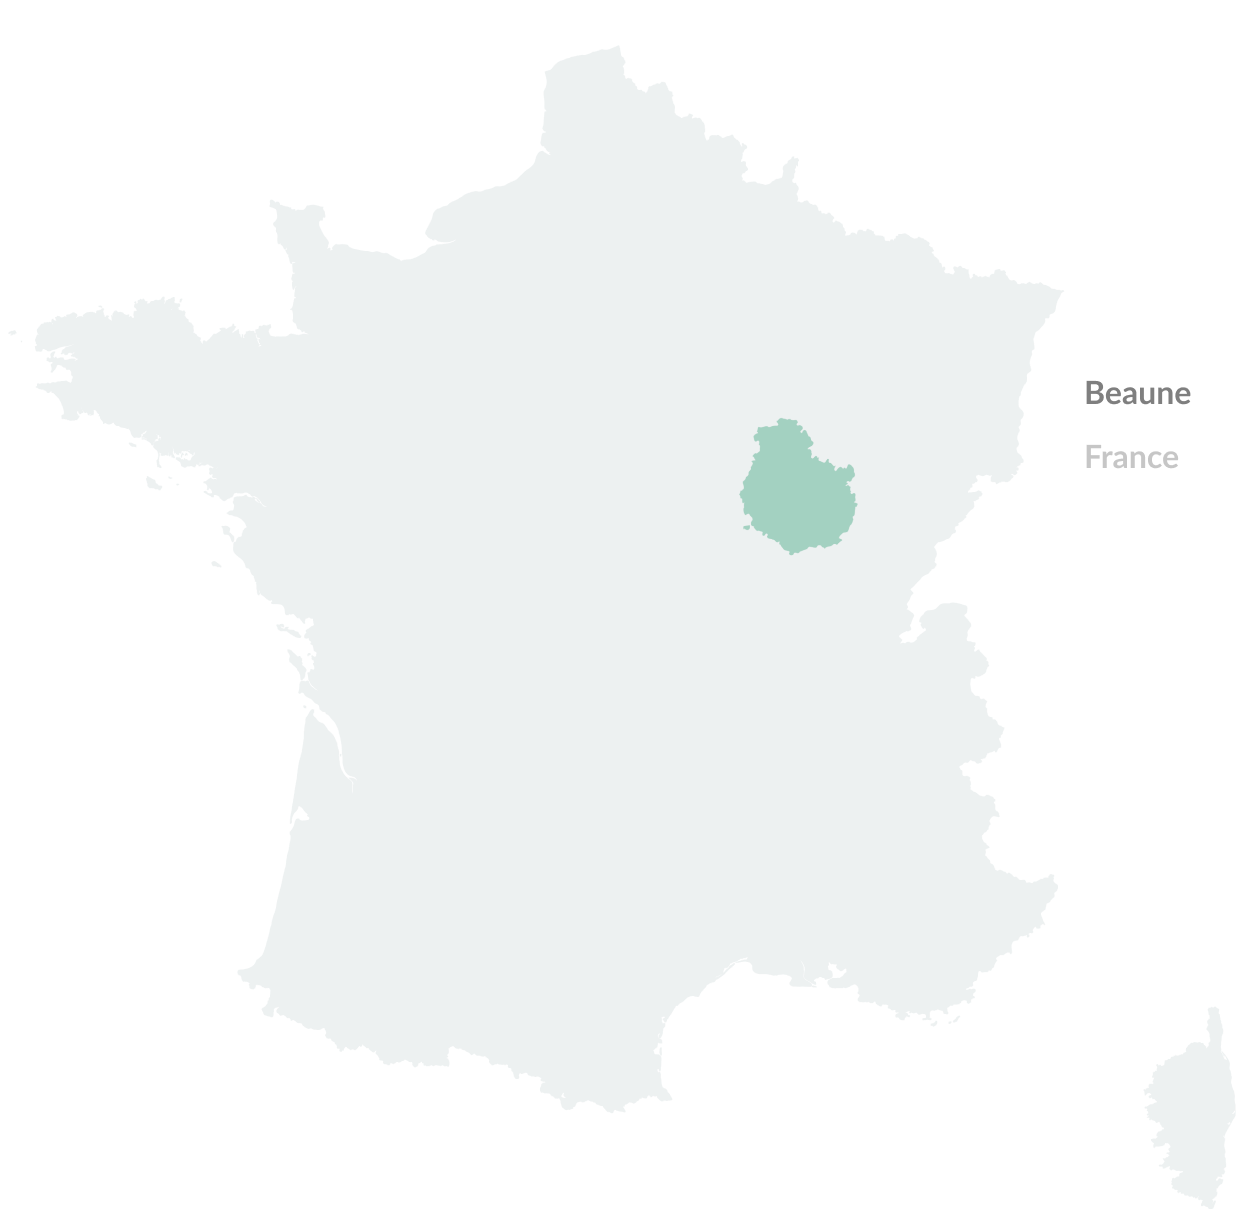 Map of Beaune, France